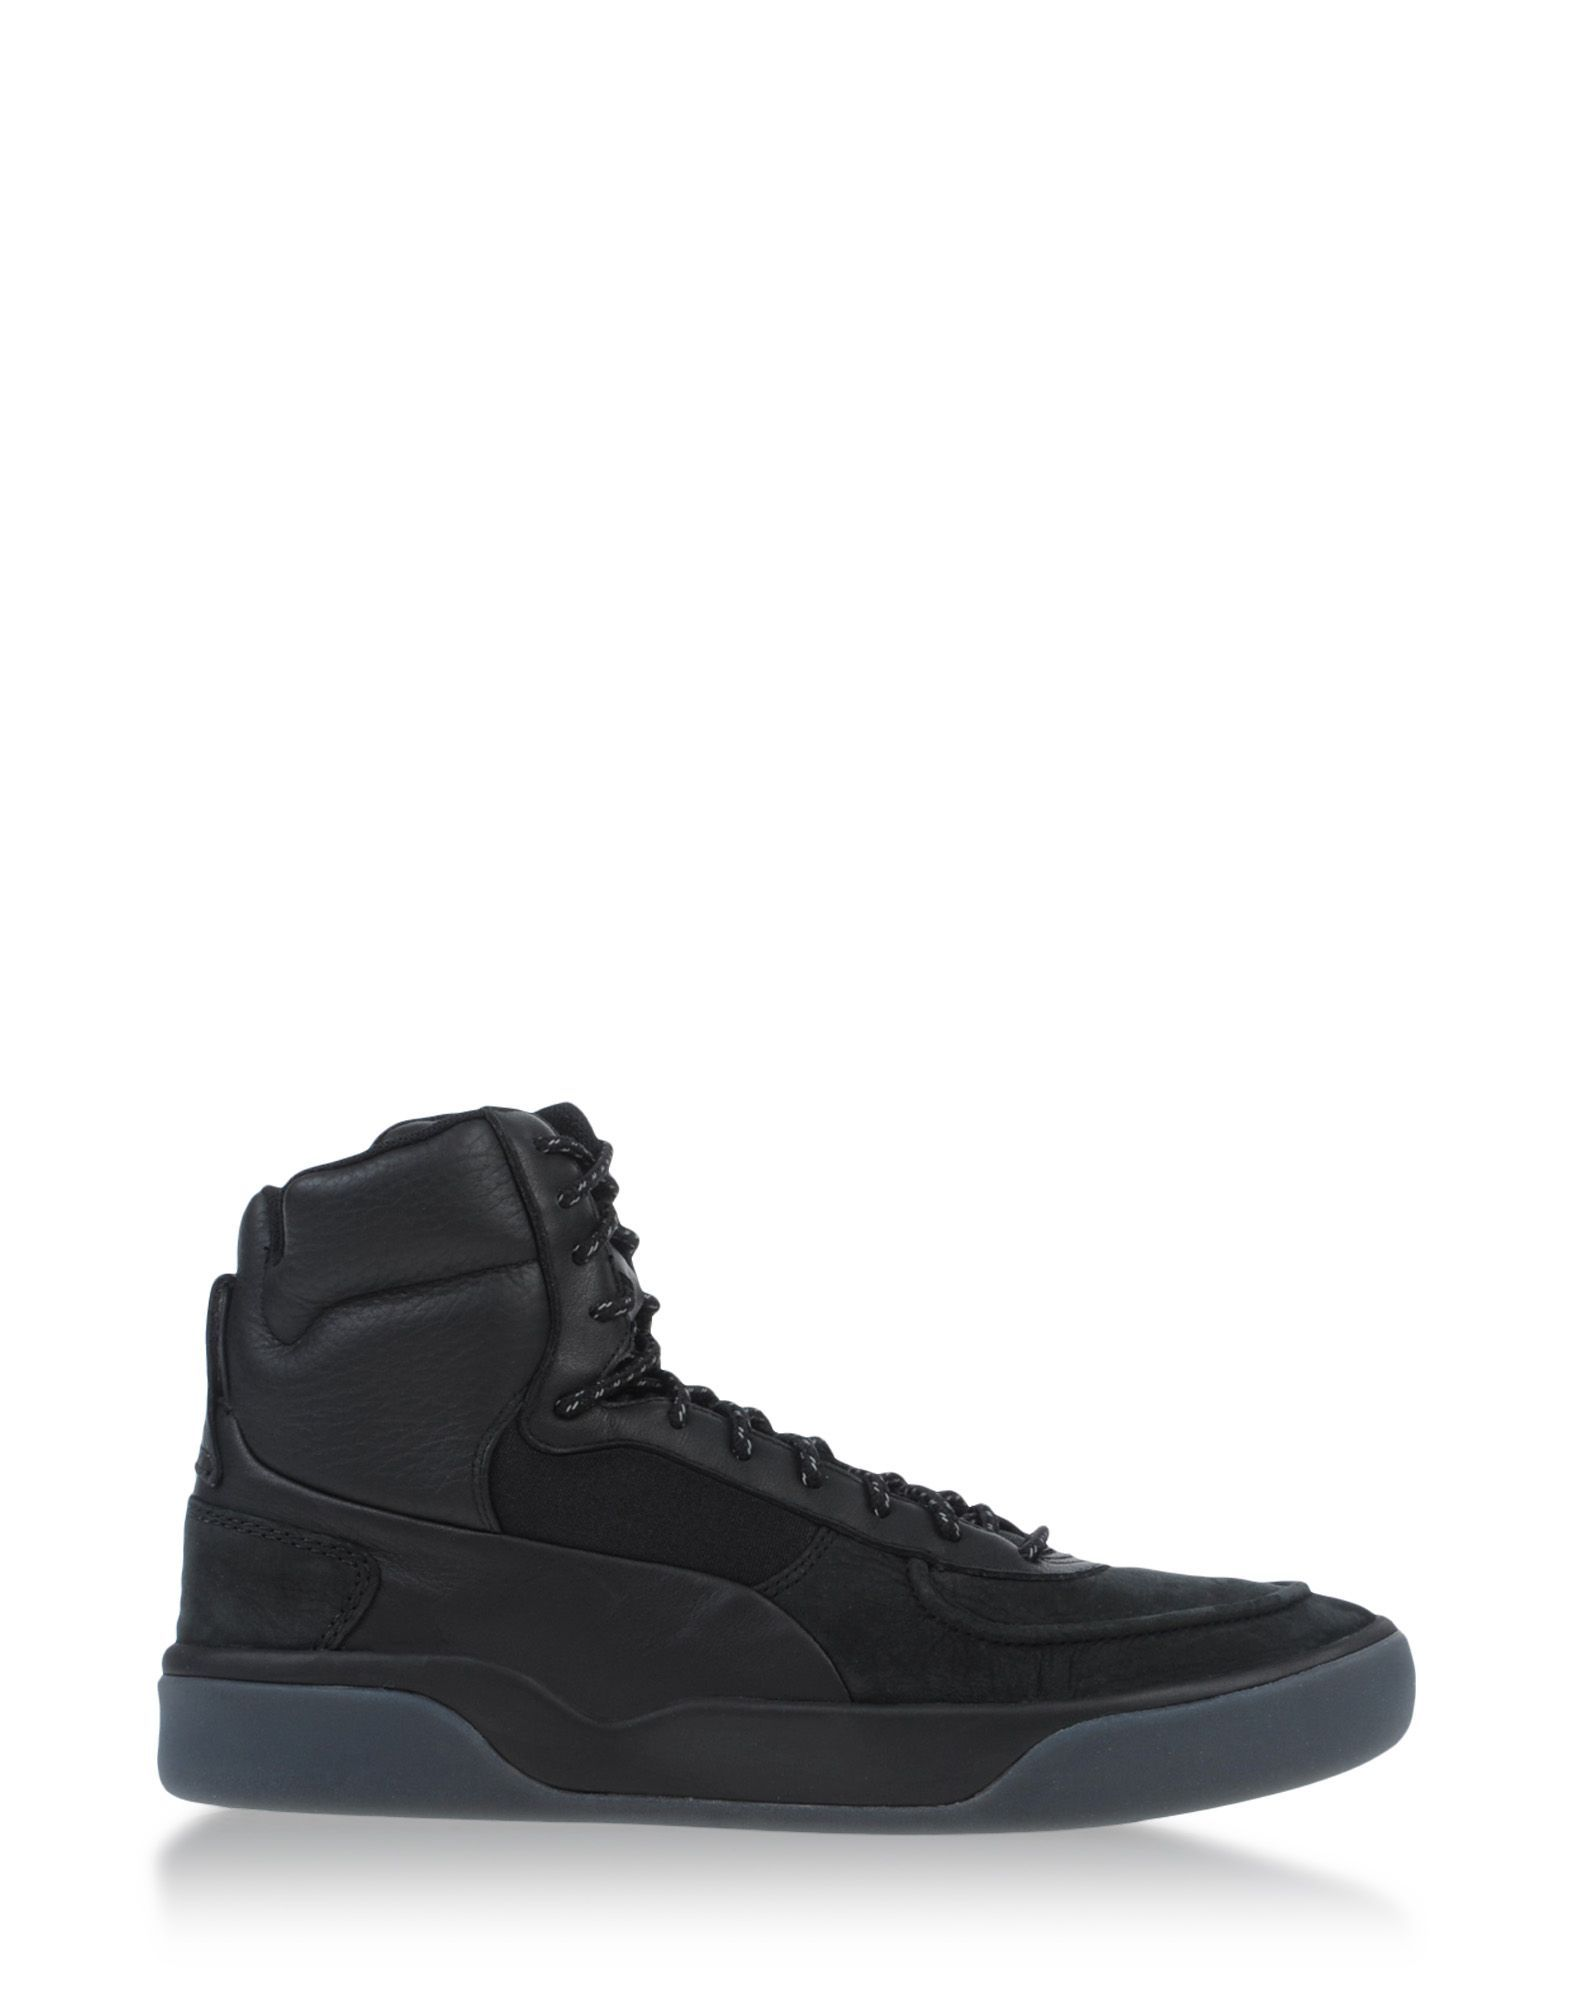 Alexander Mcqueen X Puma High-Top leather Sneakers in Black for Men